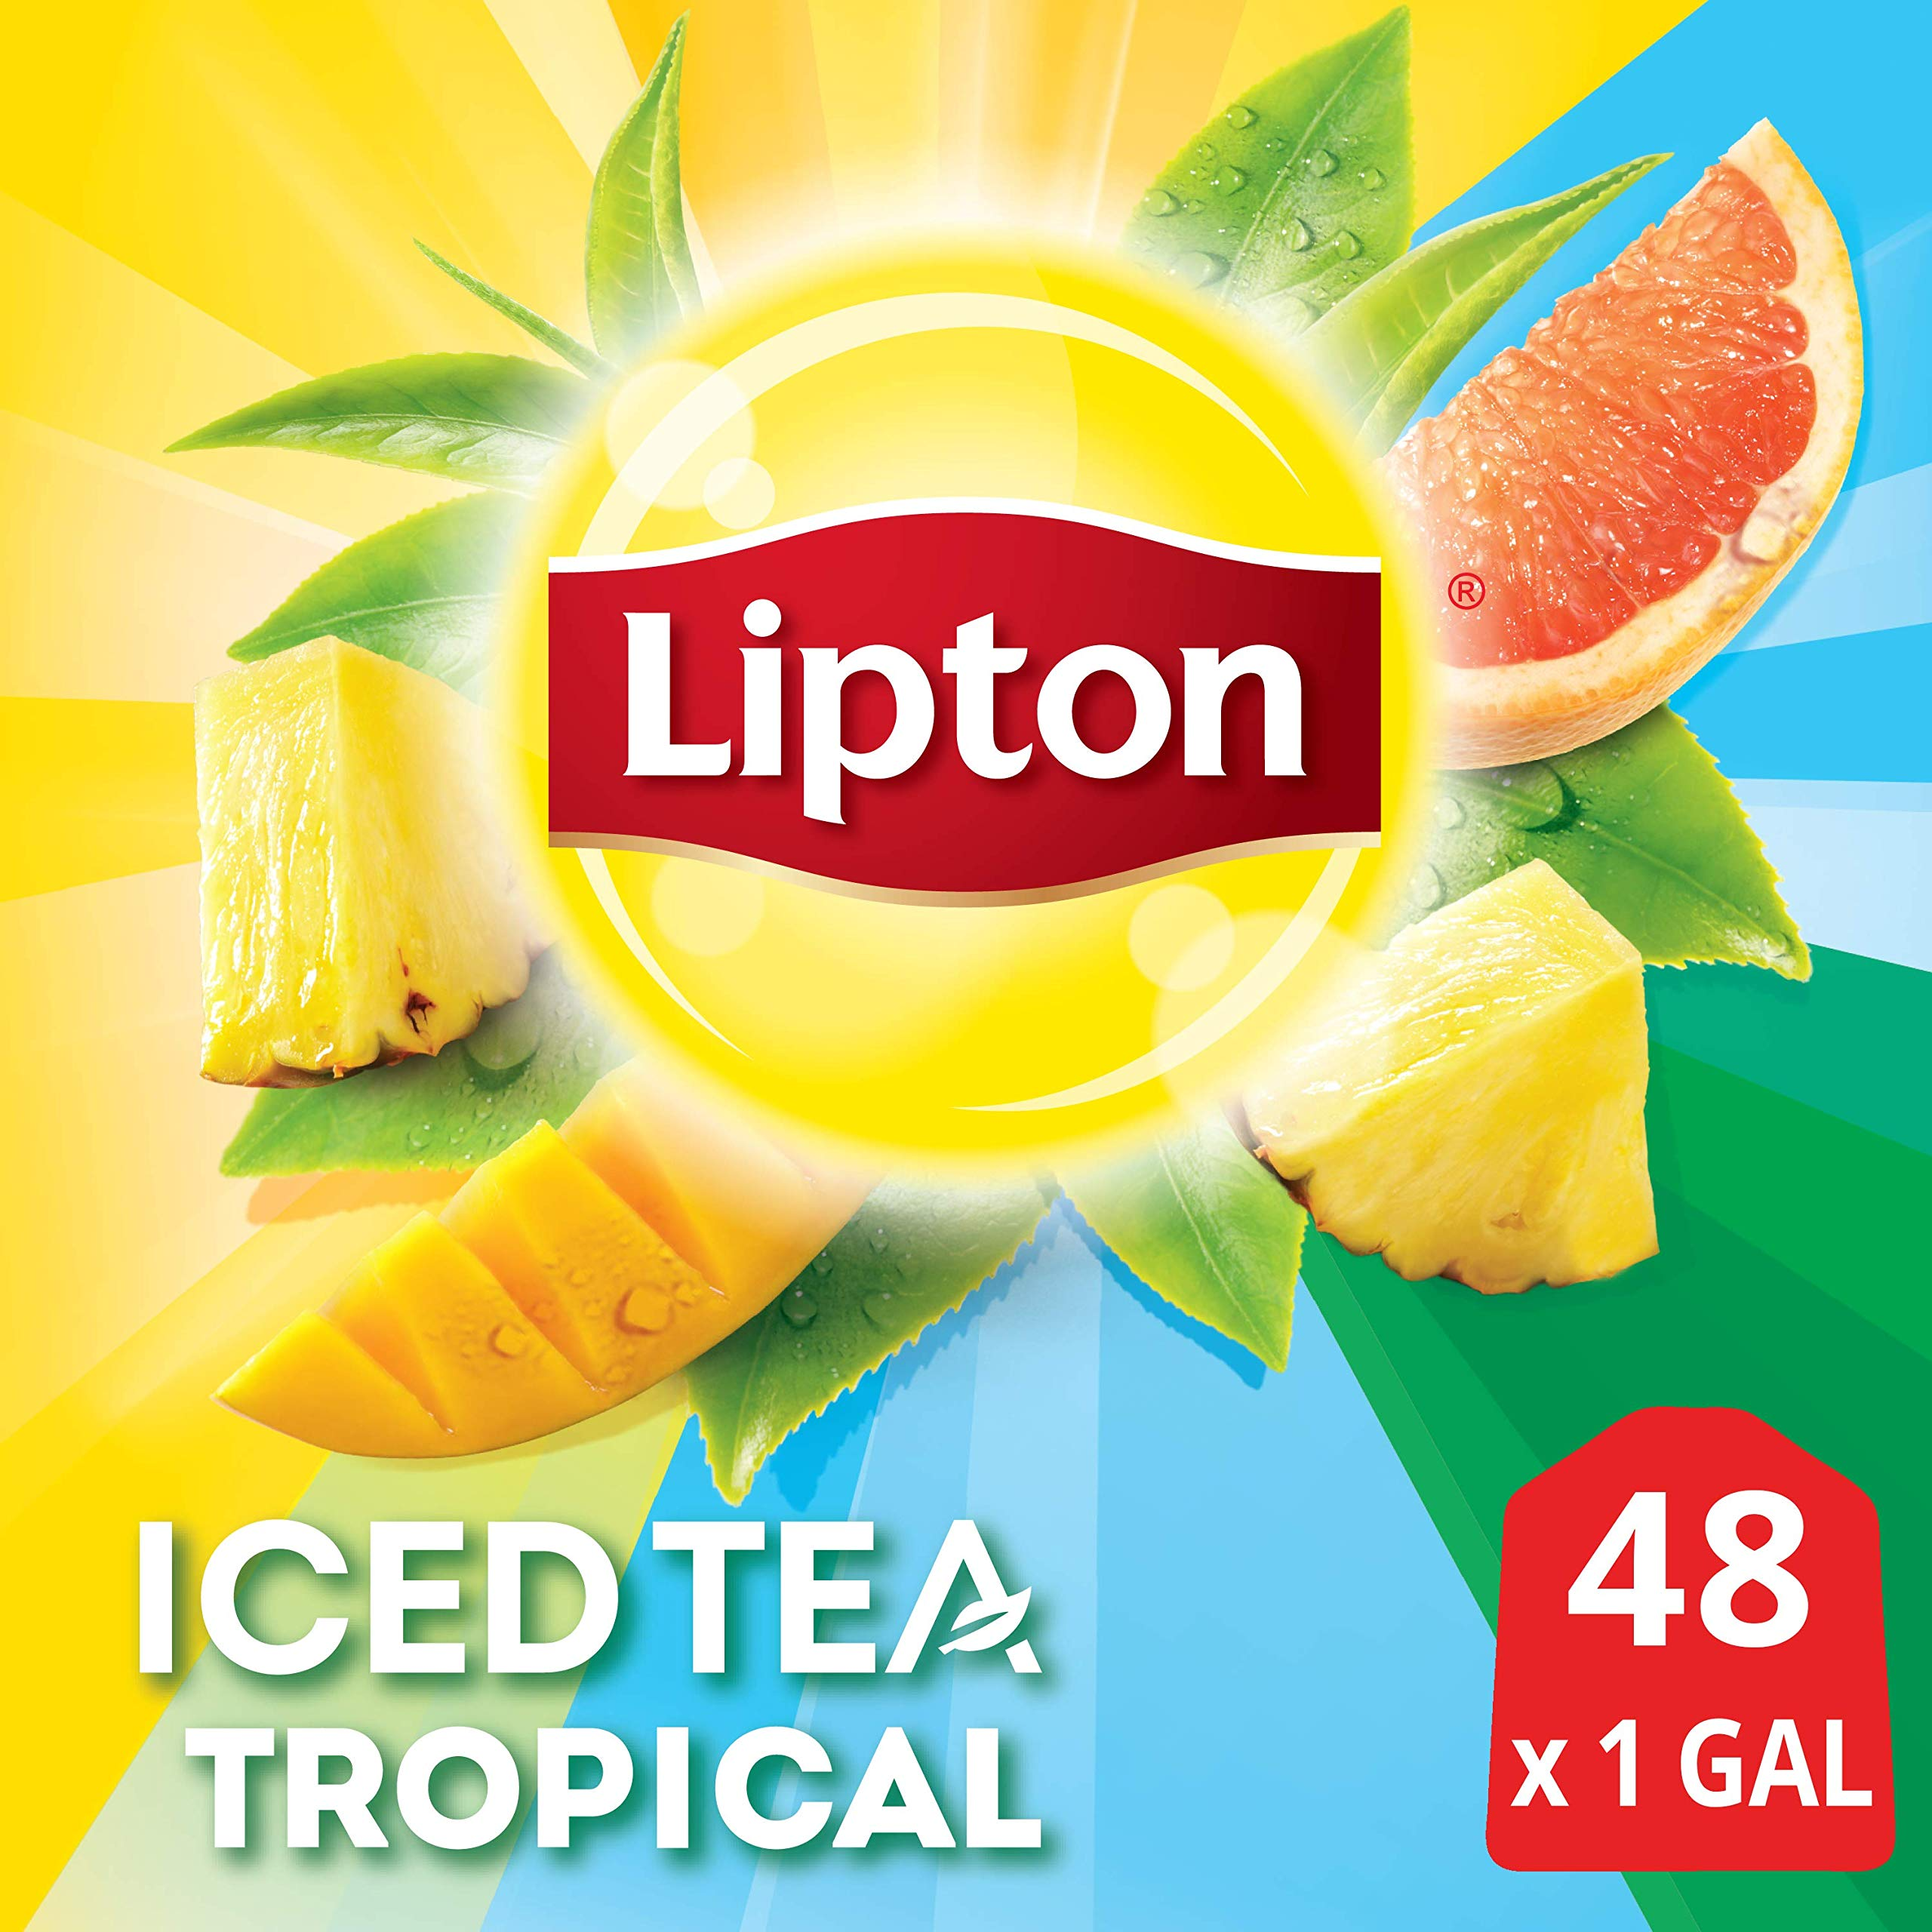 Lipton Tropical Unsweetened Iced Tea Bags Made with Tea Leaves Sourced from Rainforest Alliance Certified Farms, 1 gallon, 2x Pack of 24 by Lipton